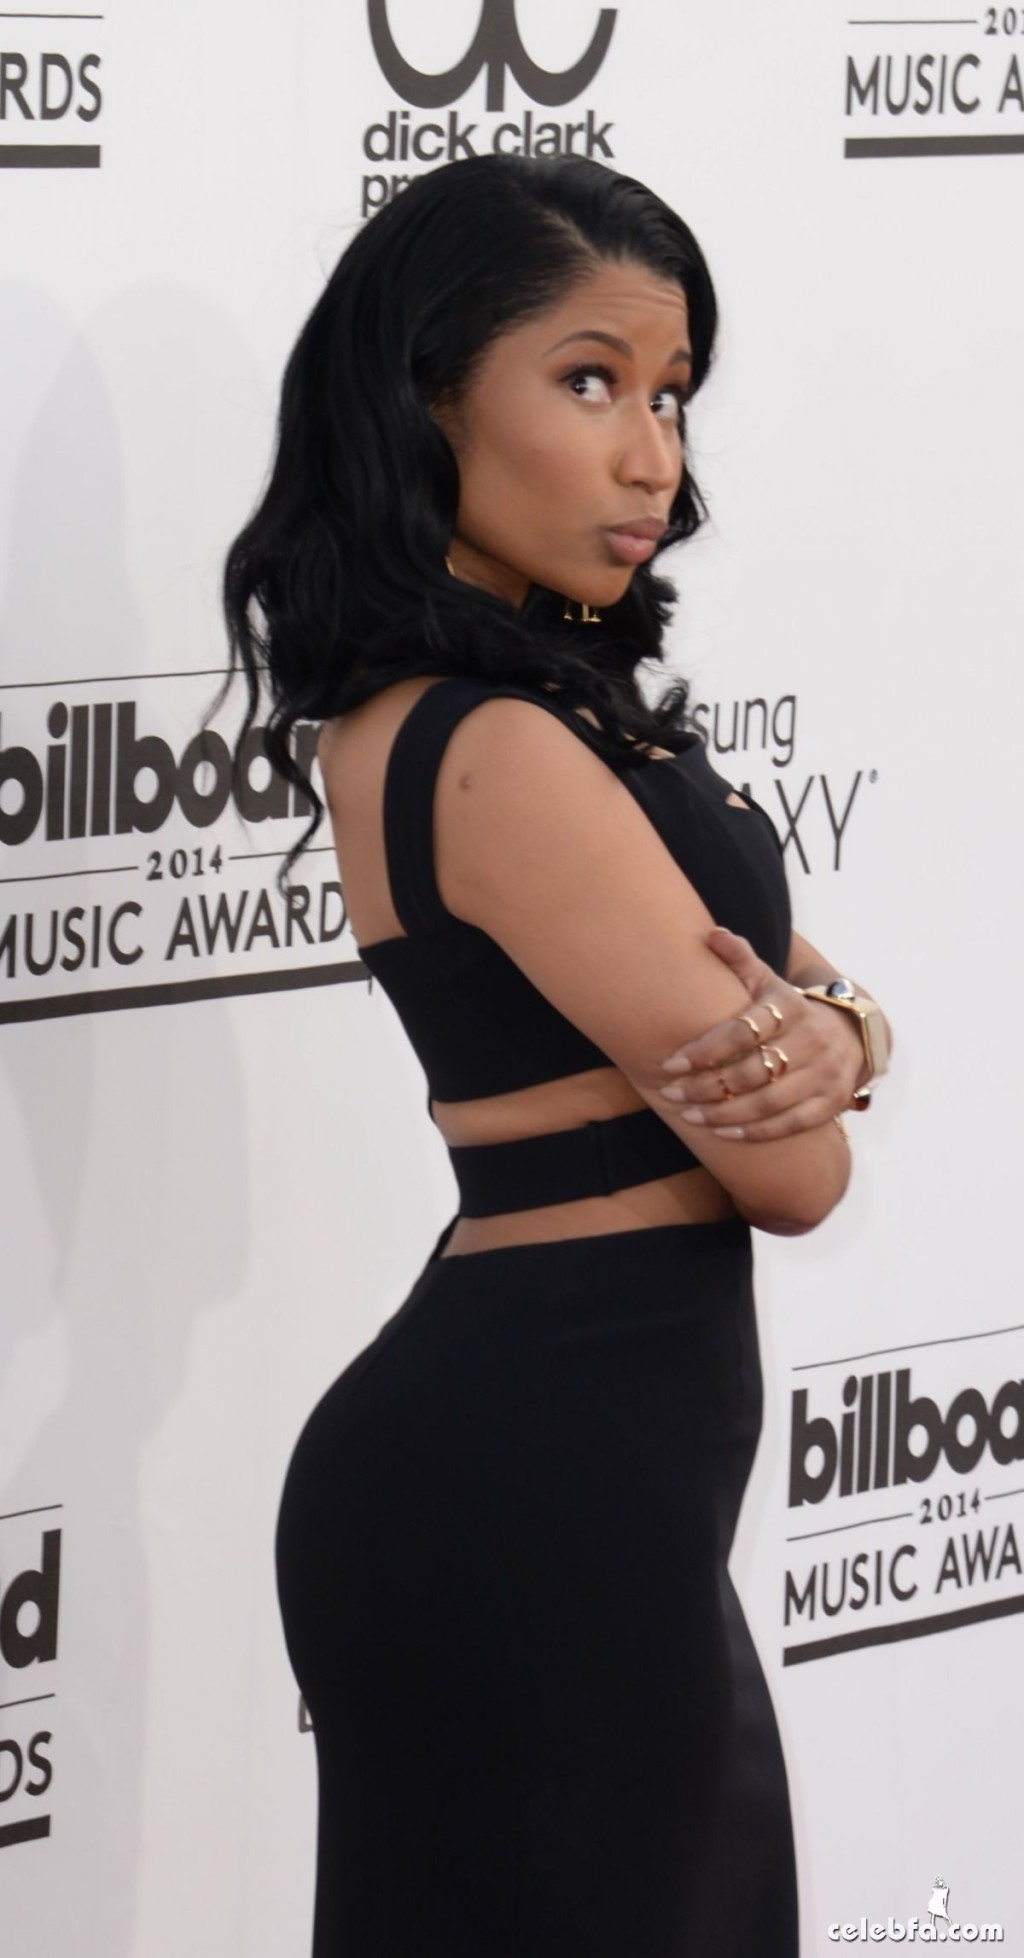 nicki-minaj-at-2015-billboard-music-awards (2)